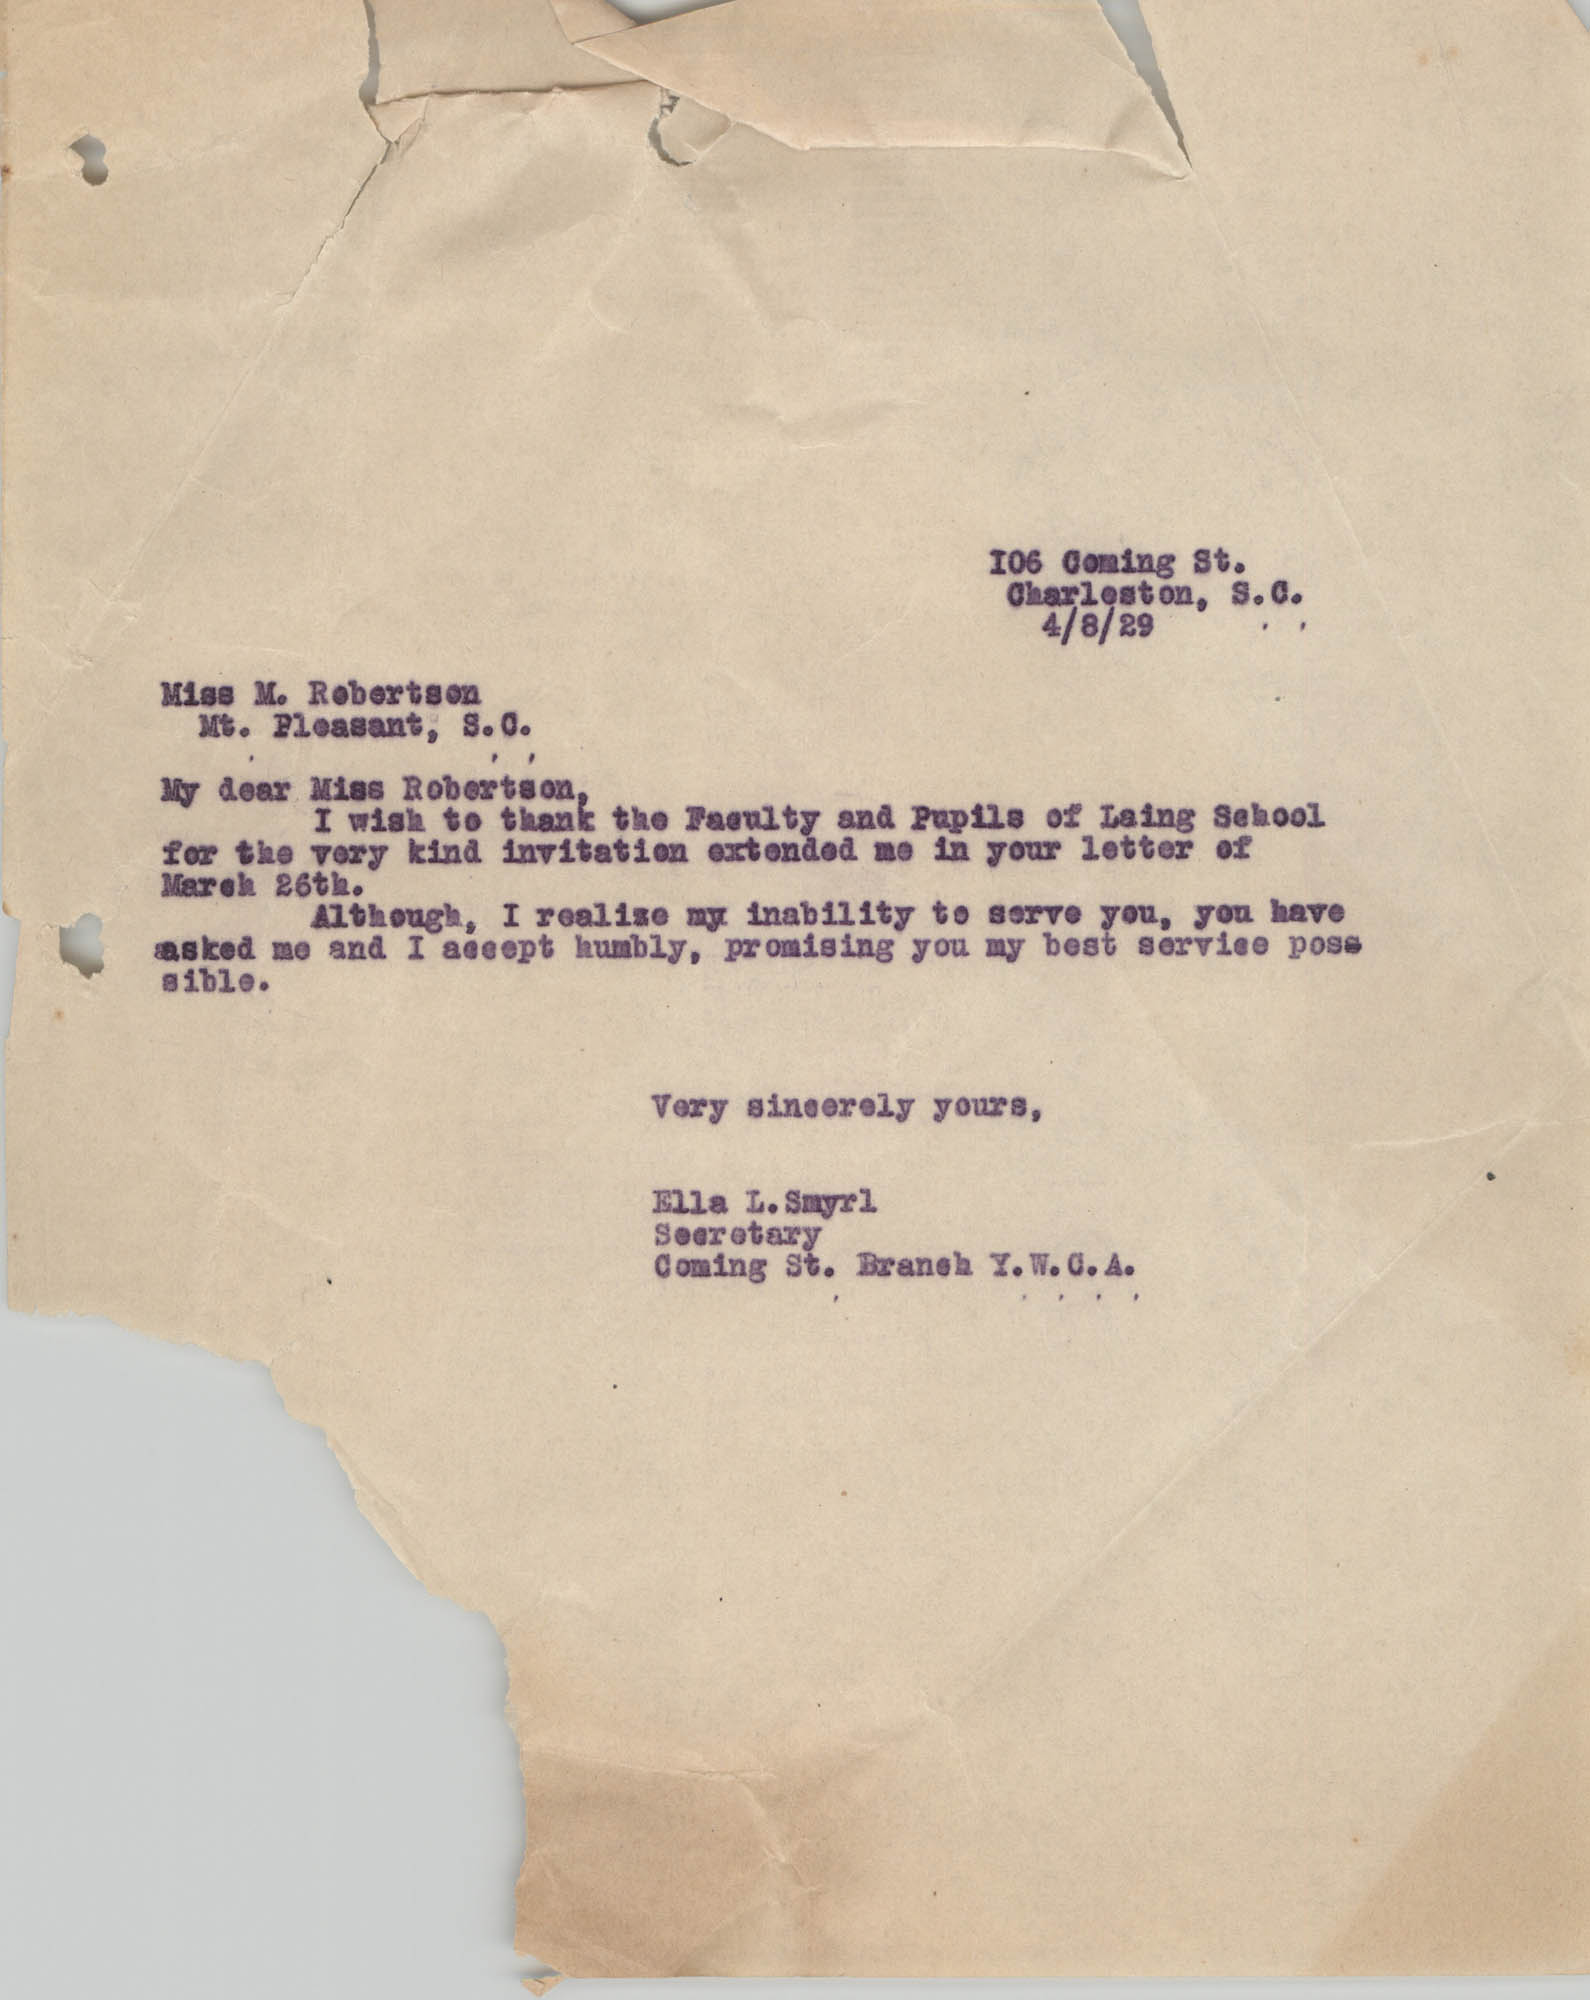 Letter from Ella L. Smyrl to M. Robertson, April 8, 1929